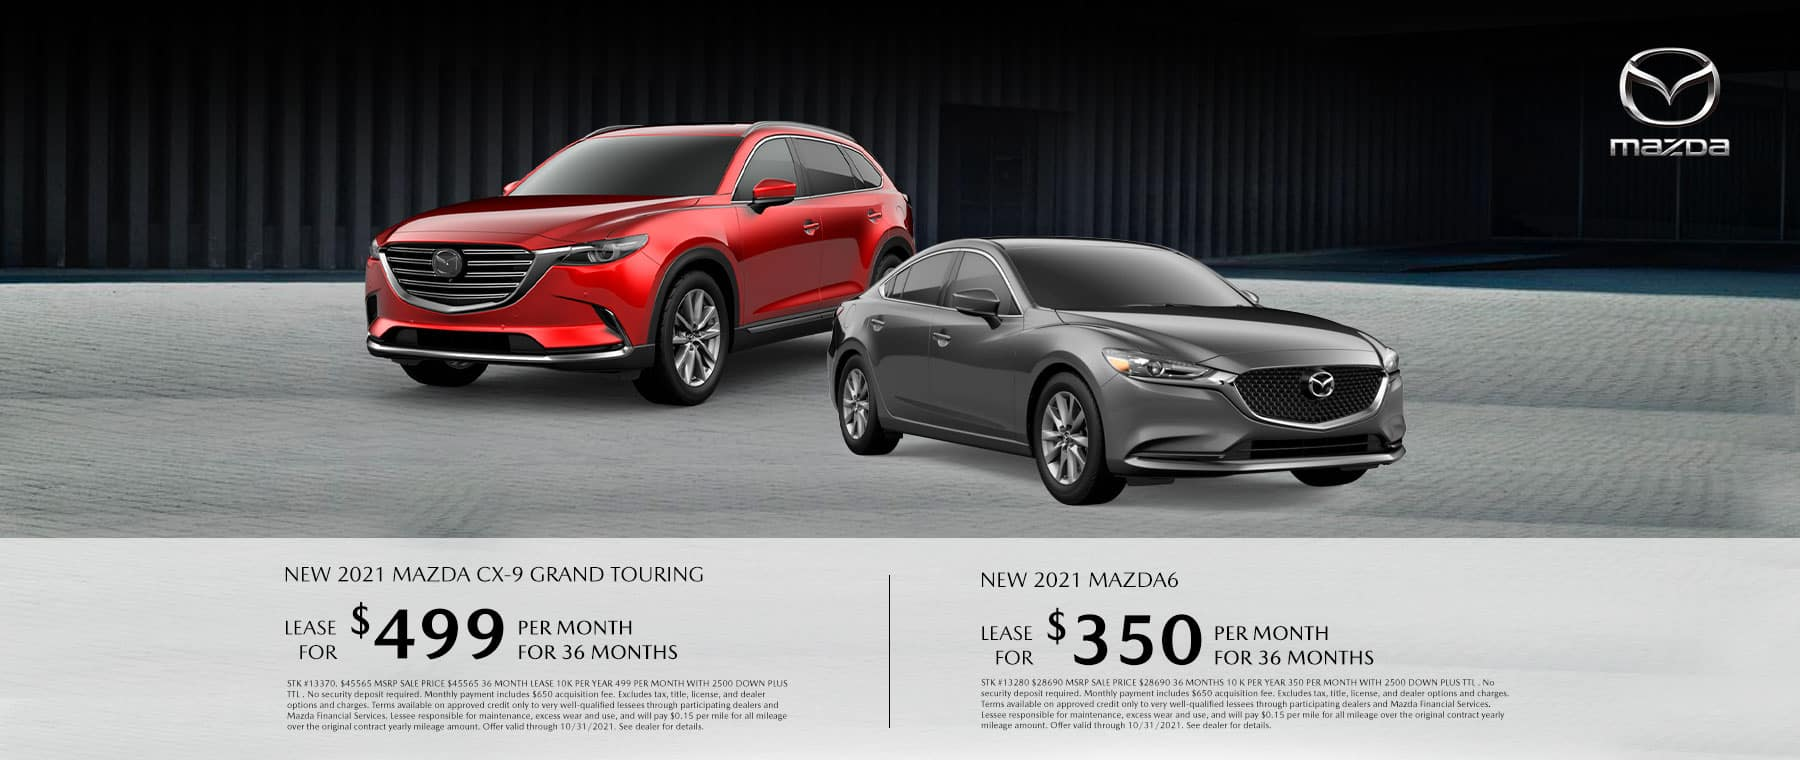 Lease a New 2021 Mazda CX-9 Grand Touring for $499/mo for 36mos! Lease a 2021 New Mazda6 for $350/mo for 36mos!